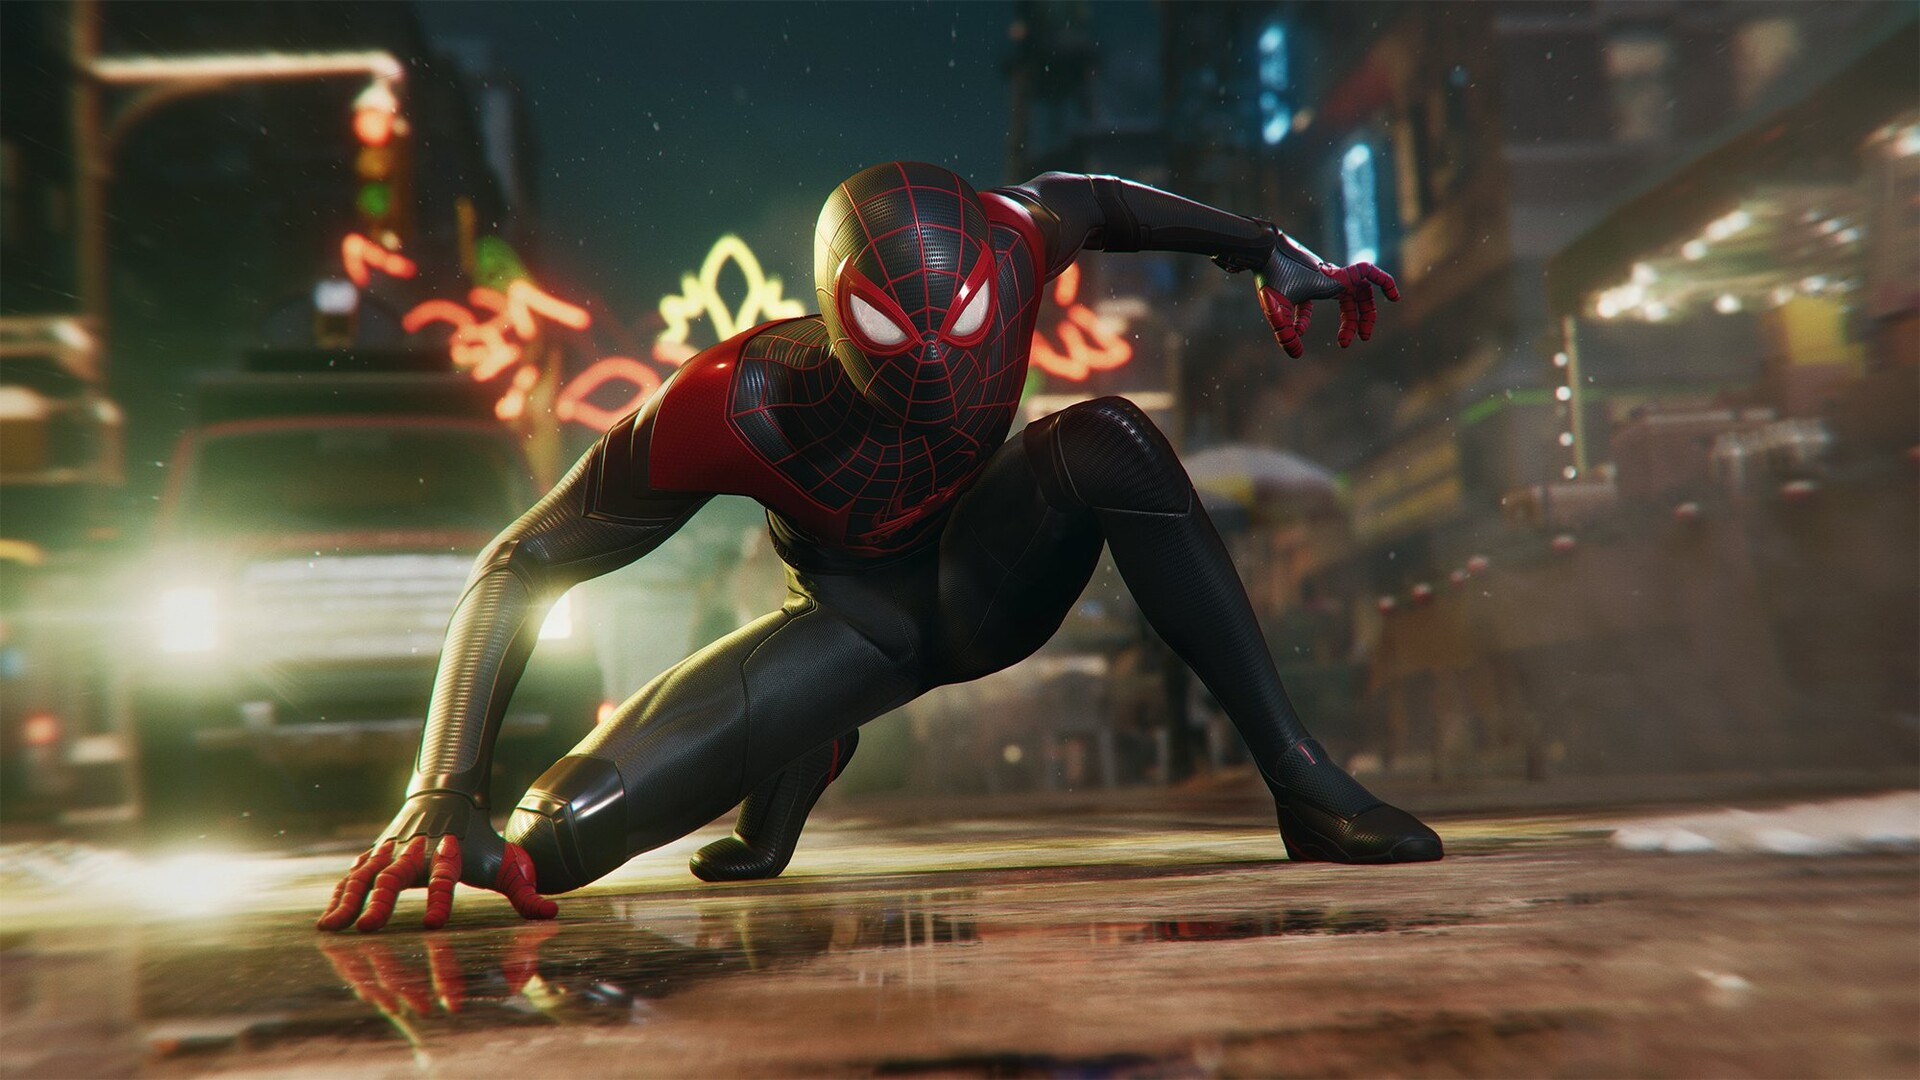 PS5's Spider-Man: Miles Morales image vs PS4's Spider-Man screenshots comparison shows how far the PlayStation has come - NotebookCheck.net News